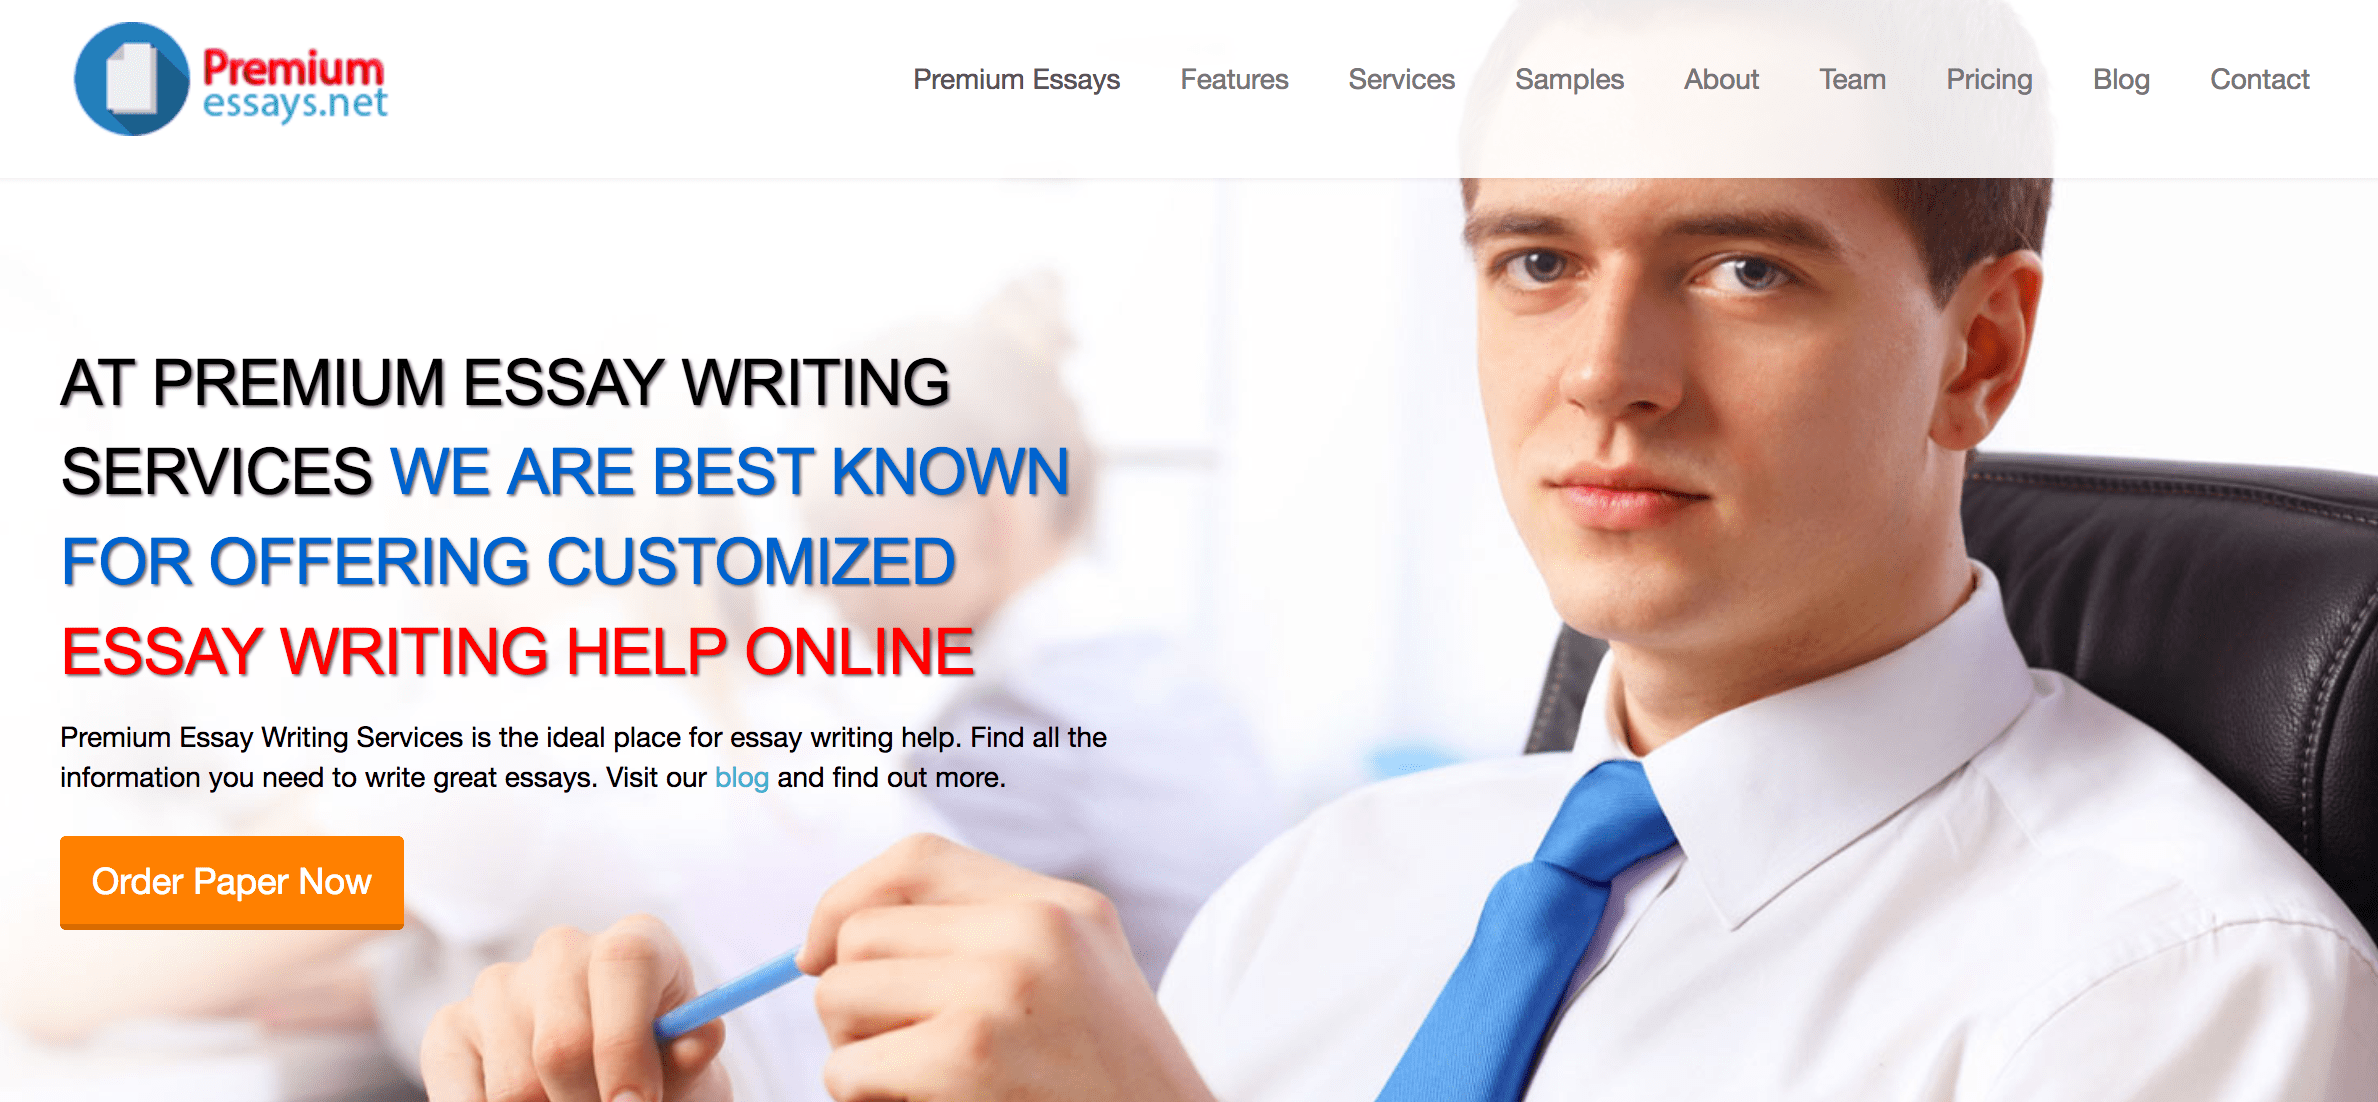 013 Essay Example Writing Service 3752552280 Premium Wondrous Free Uk Reviews Forum Best Full